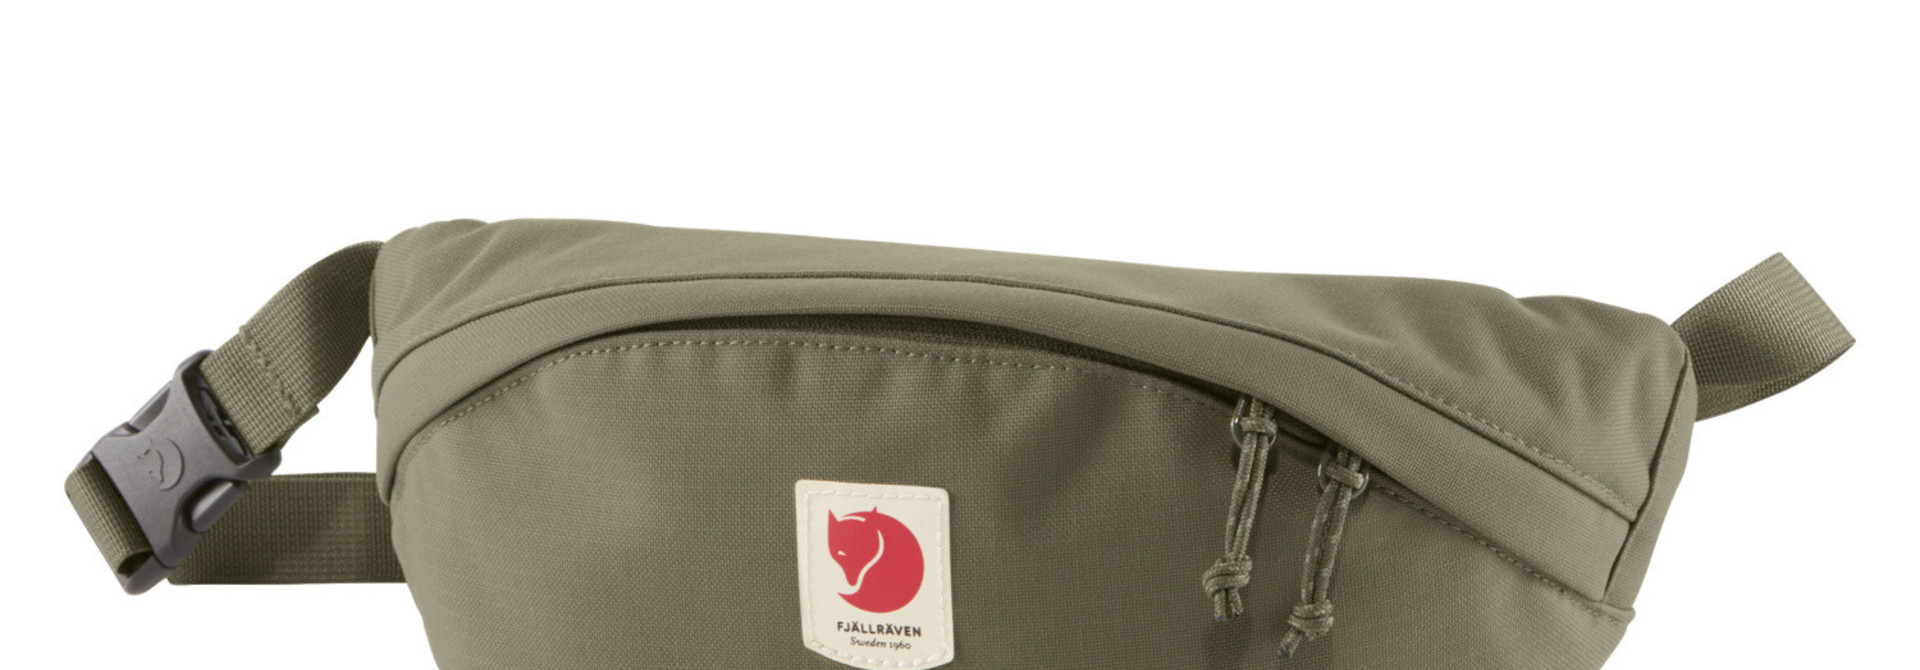 Fjällräven Ulvö Hip Pack Medium Laurel Green